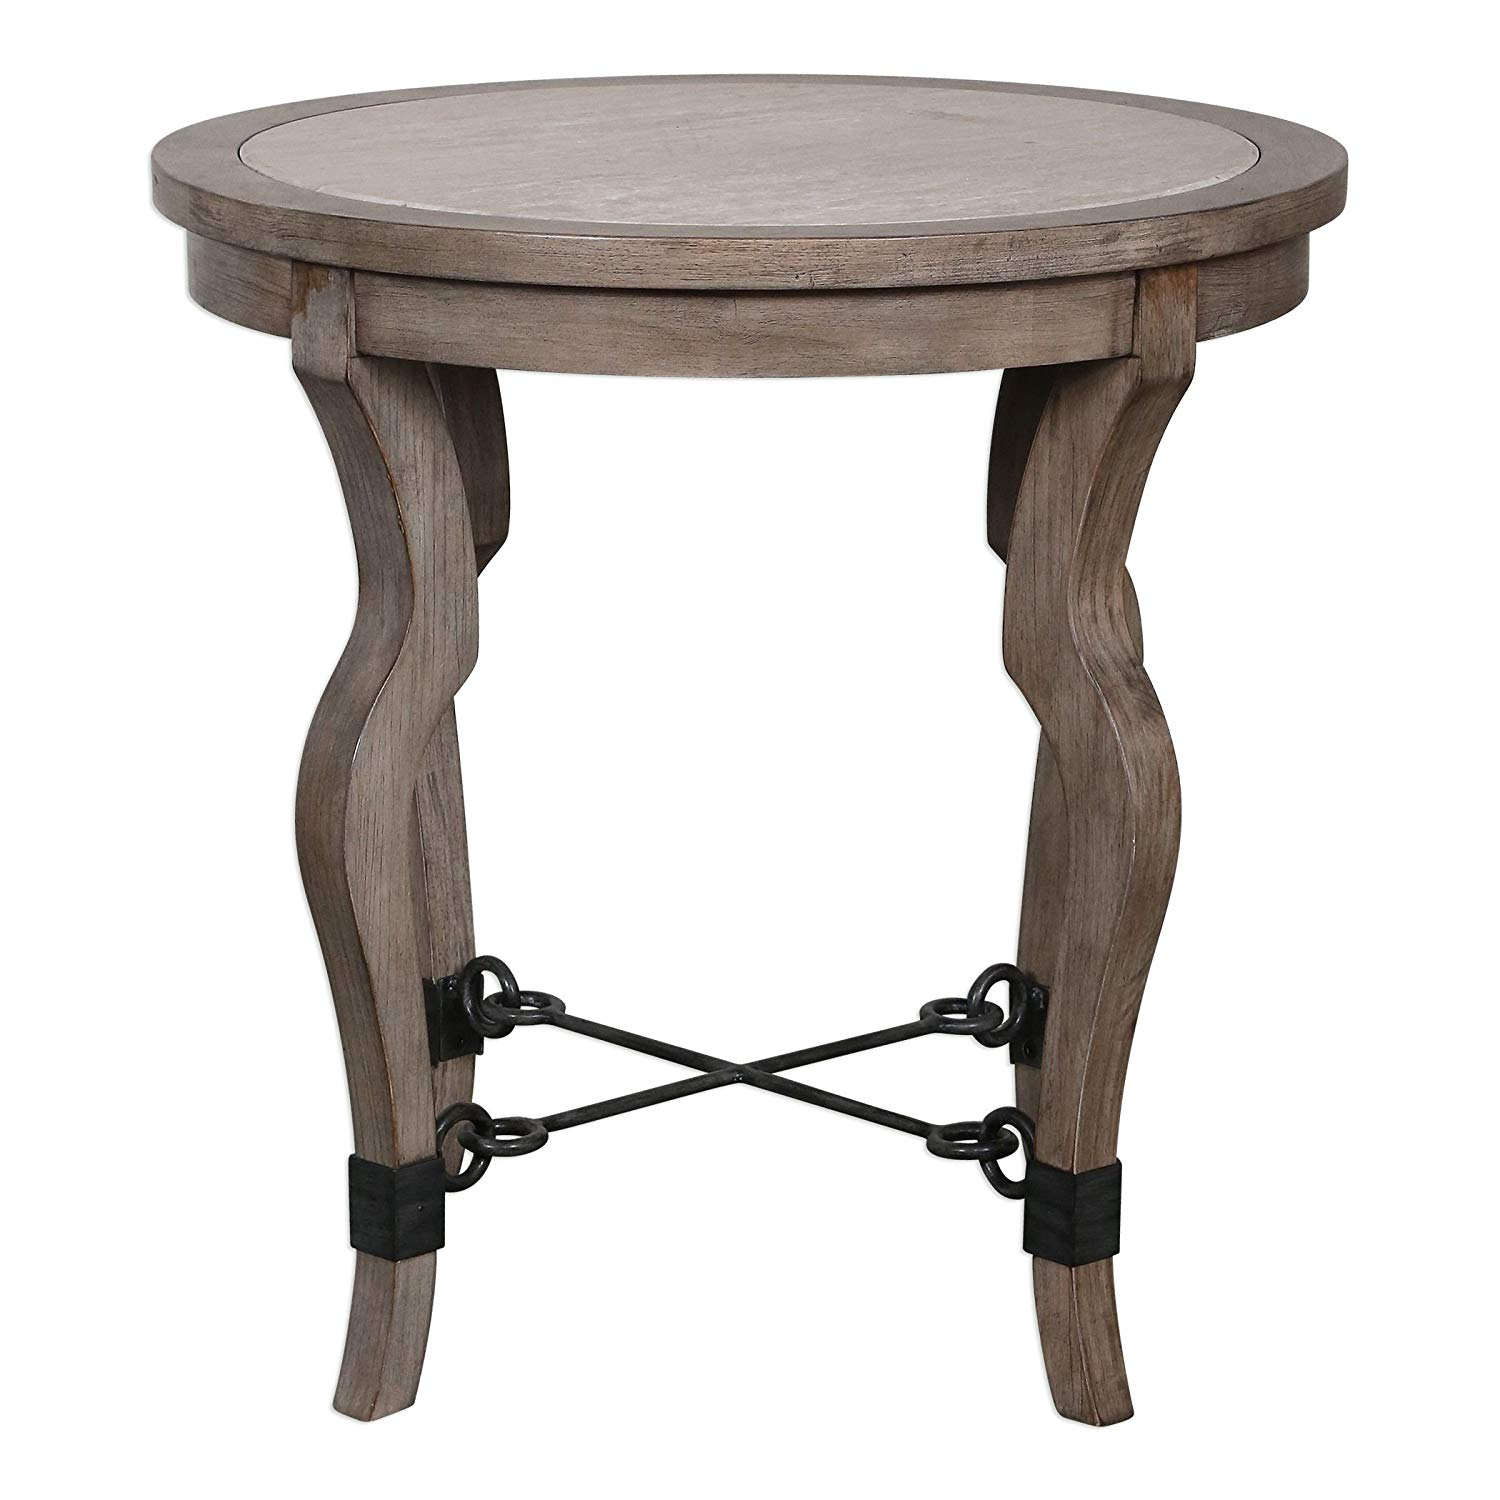 luxe curved weathered wood round accent table travertine inlay light stone kitchen dining sheesham furniture extra tall lamps aluminum patio narrow entryway bunnings outdoor